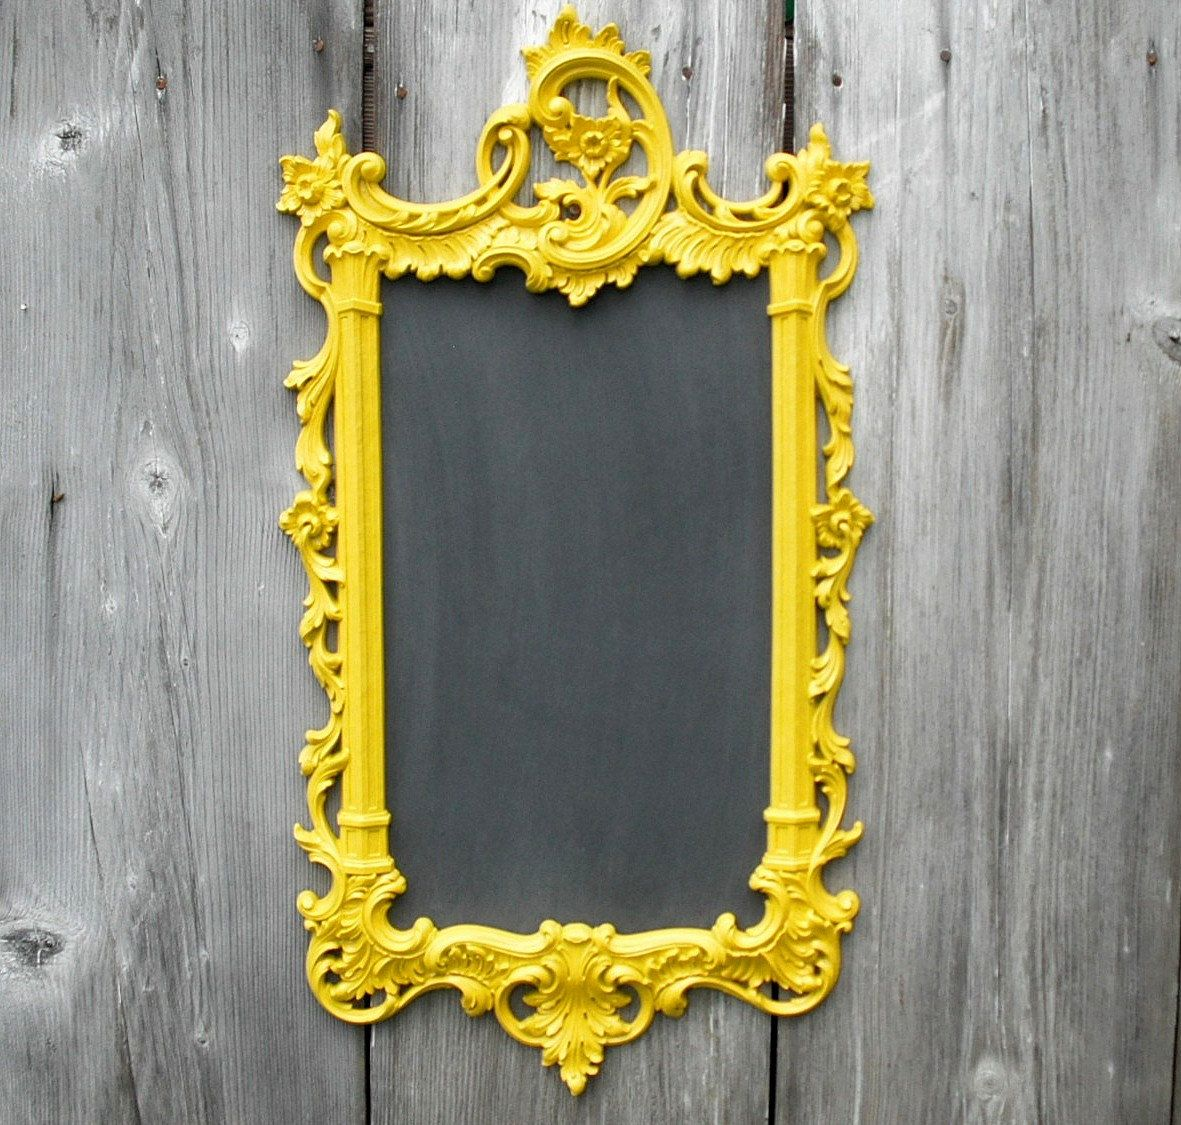 HOLLYWOOD REGENCY CHALKBOARD For Sale Vintage Decorative Ornate ...